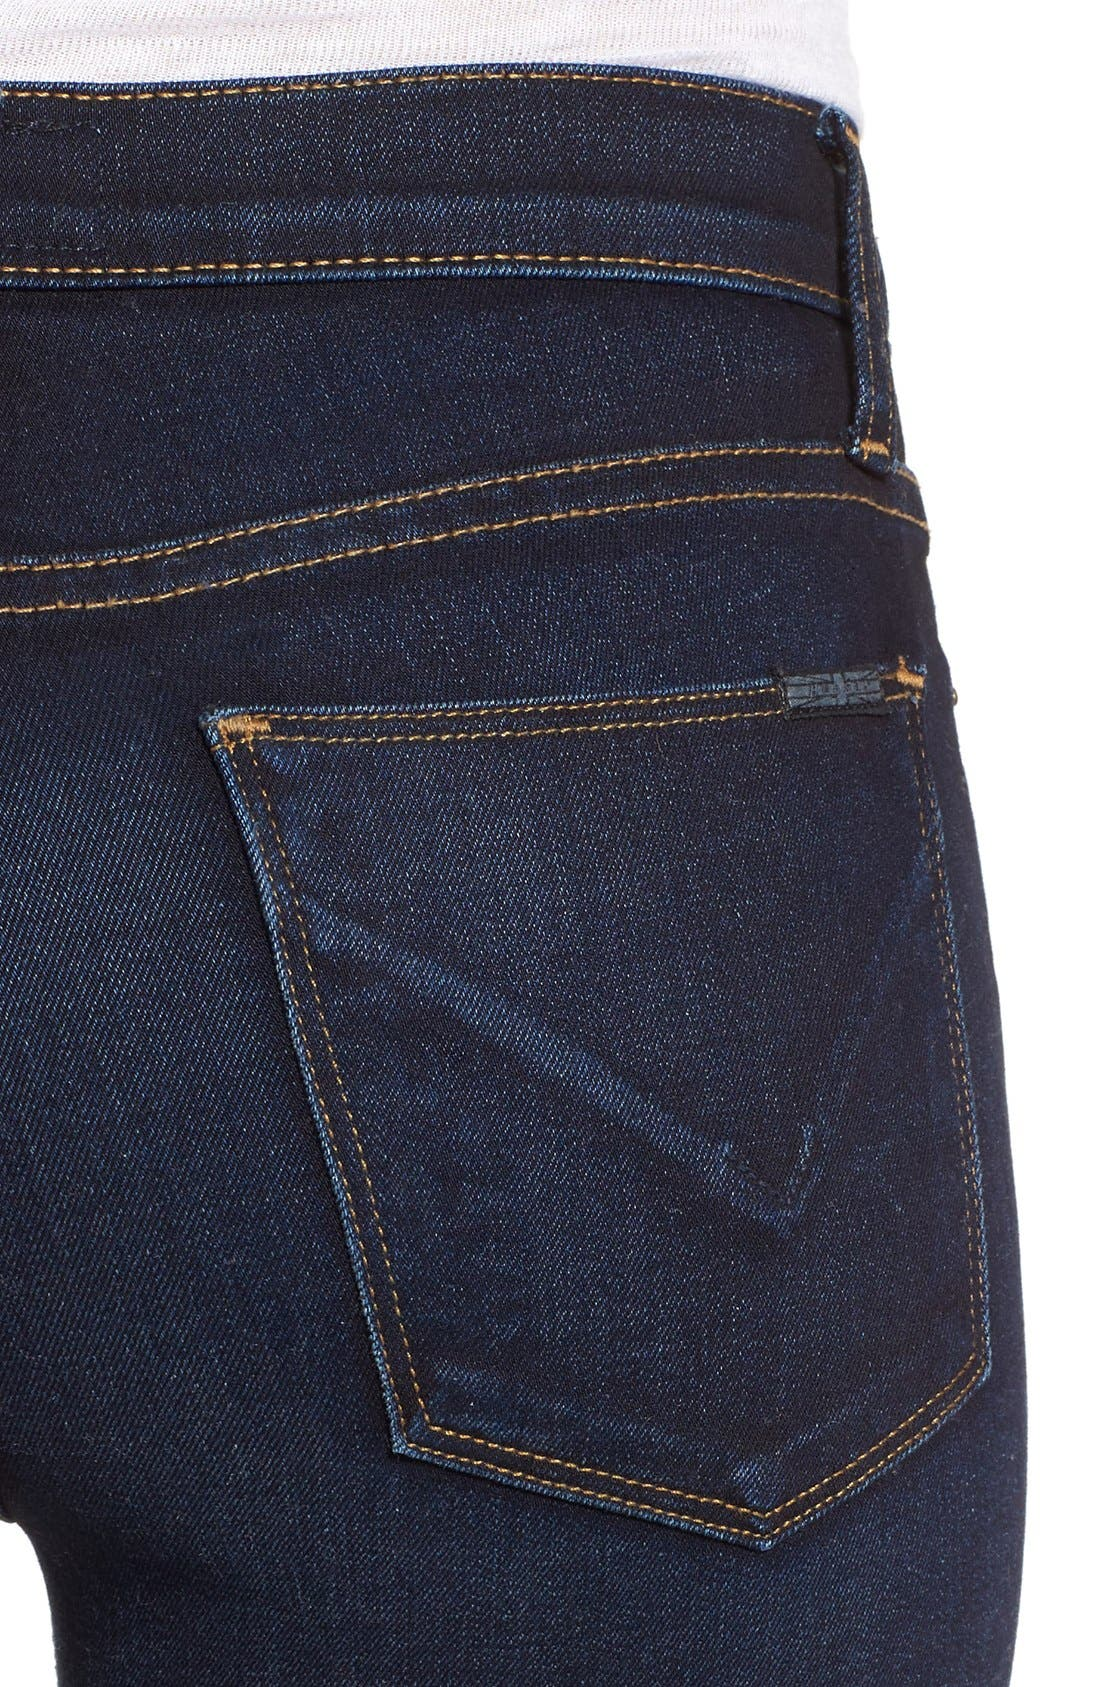 'Nico' Ankle Skinny Jeans,                             Alternate thumbnail 39, color,